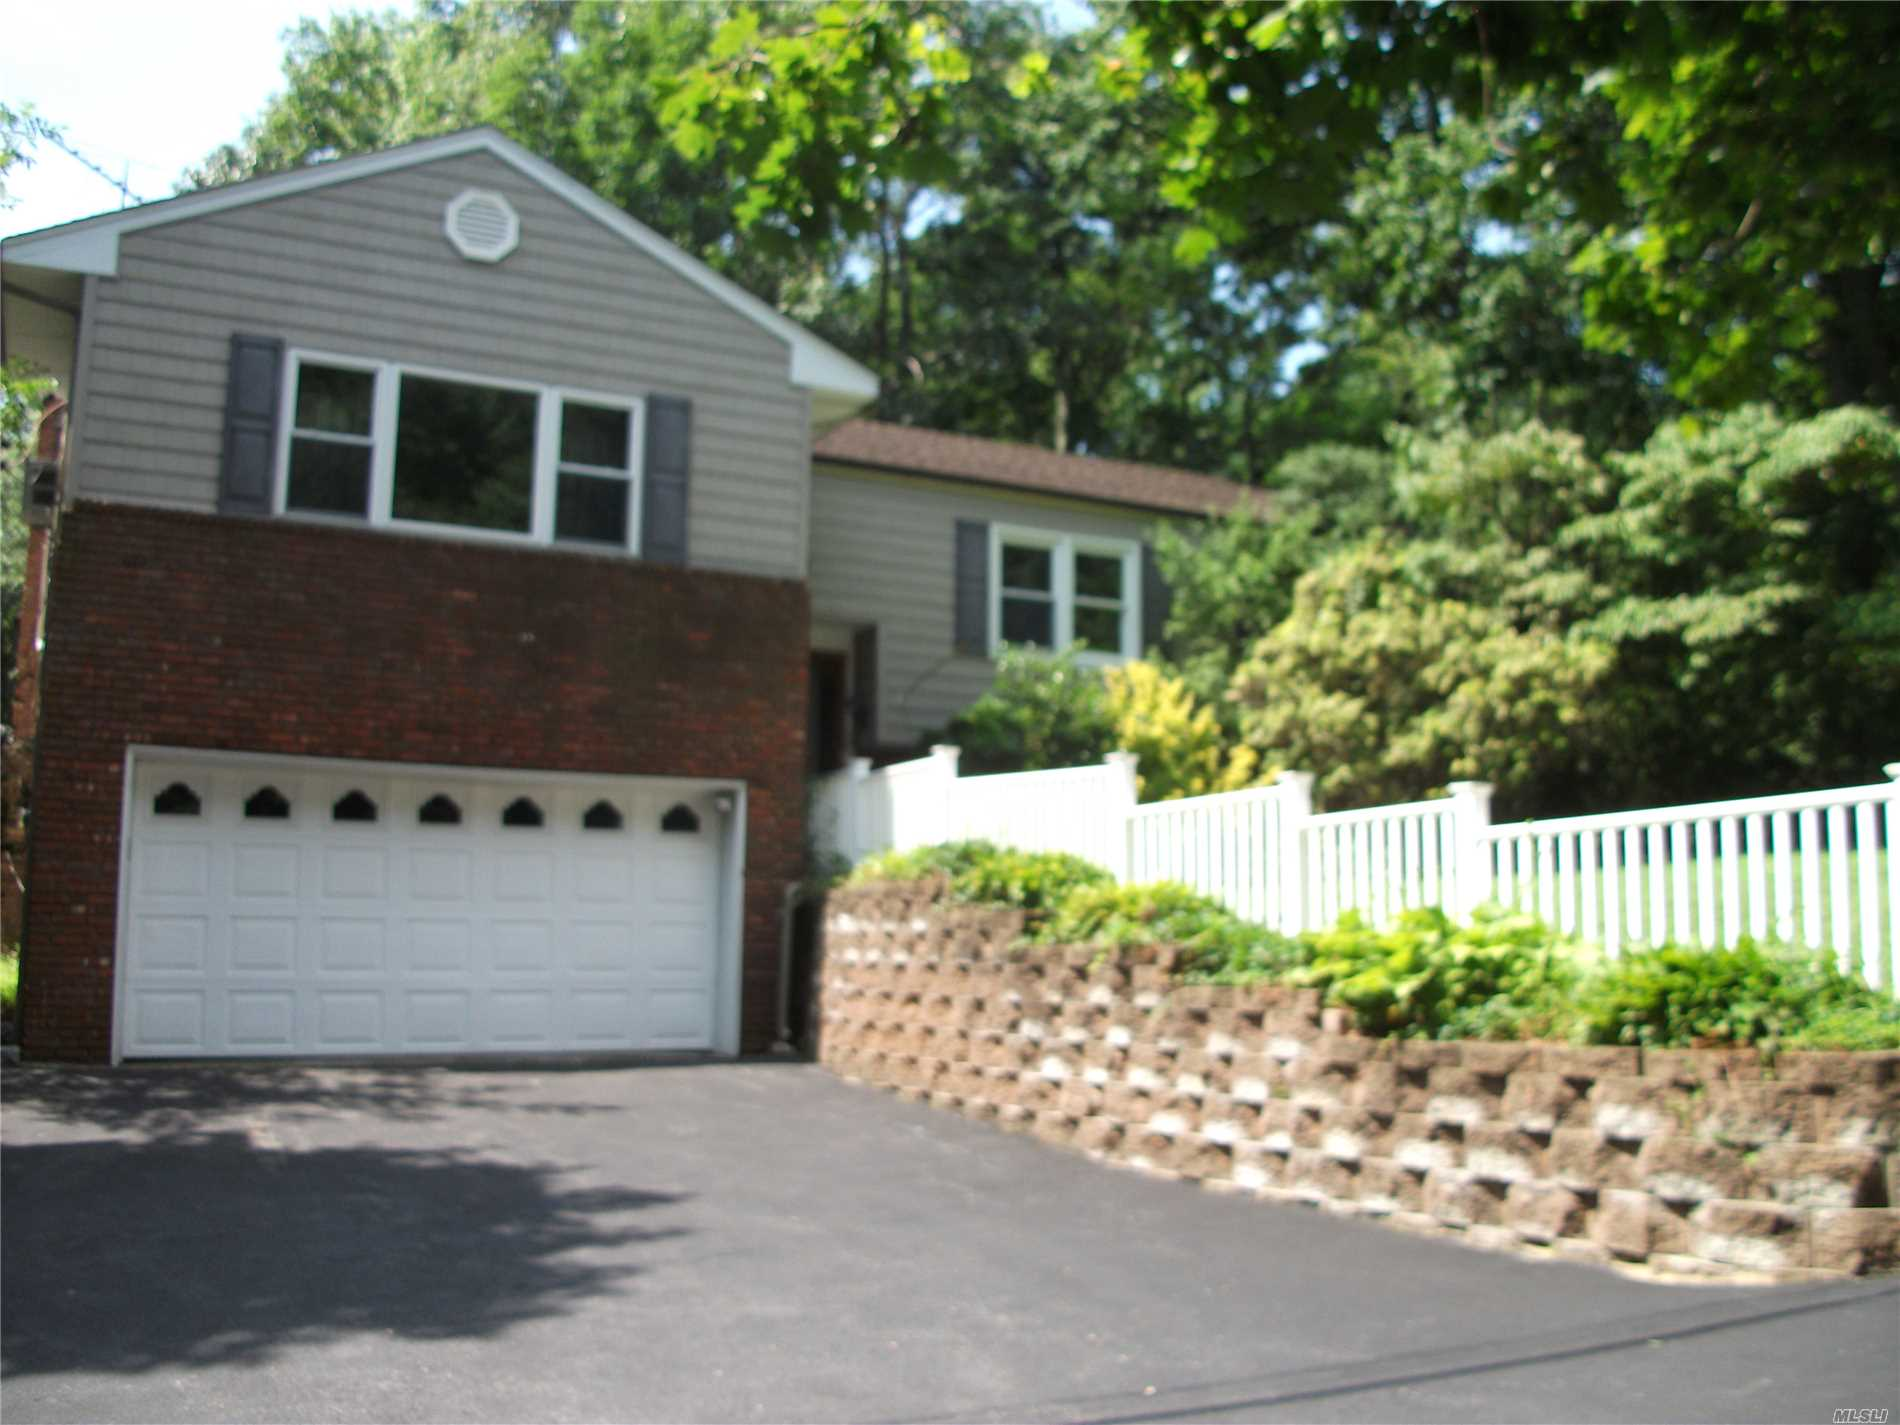 Great Value In Centerport! Blue Ribbon Harborfields Schools!!! Minutes To Water, Marinas And Hunt/Npt Villages. Large Home With Possible Acc. Apt With Proper Permits. 200 Amp Elec, Above Ground Oil Tank. New Front Walkway, 2 Car Garage. Quiet Country Court. No Thru Traffic.